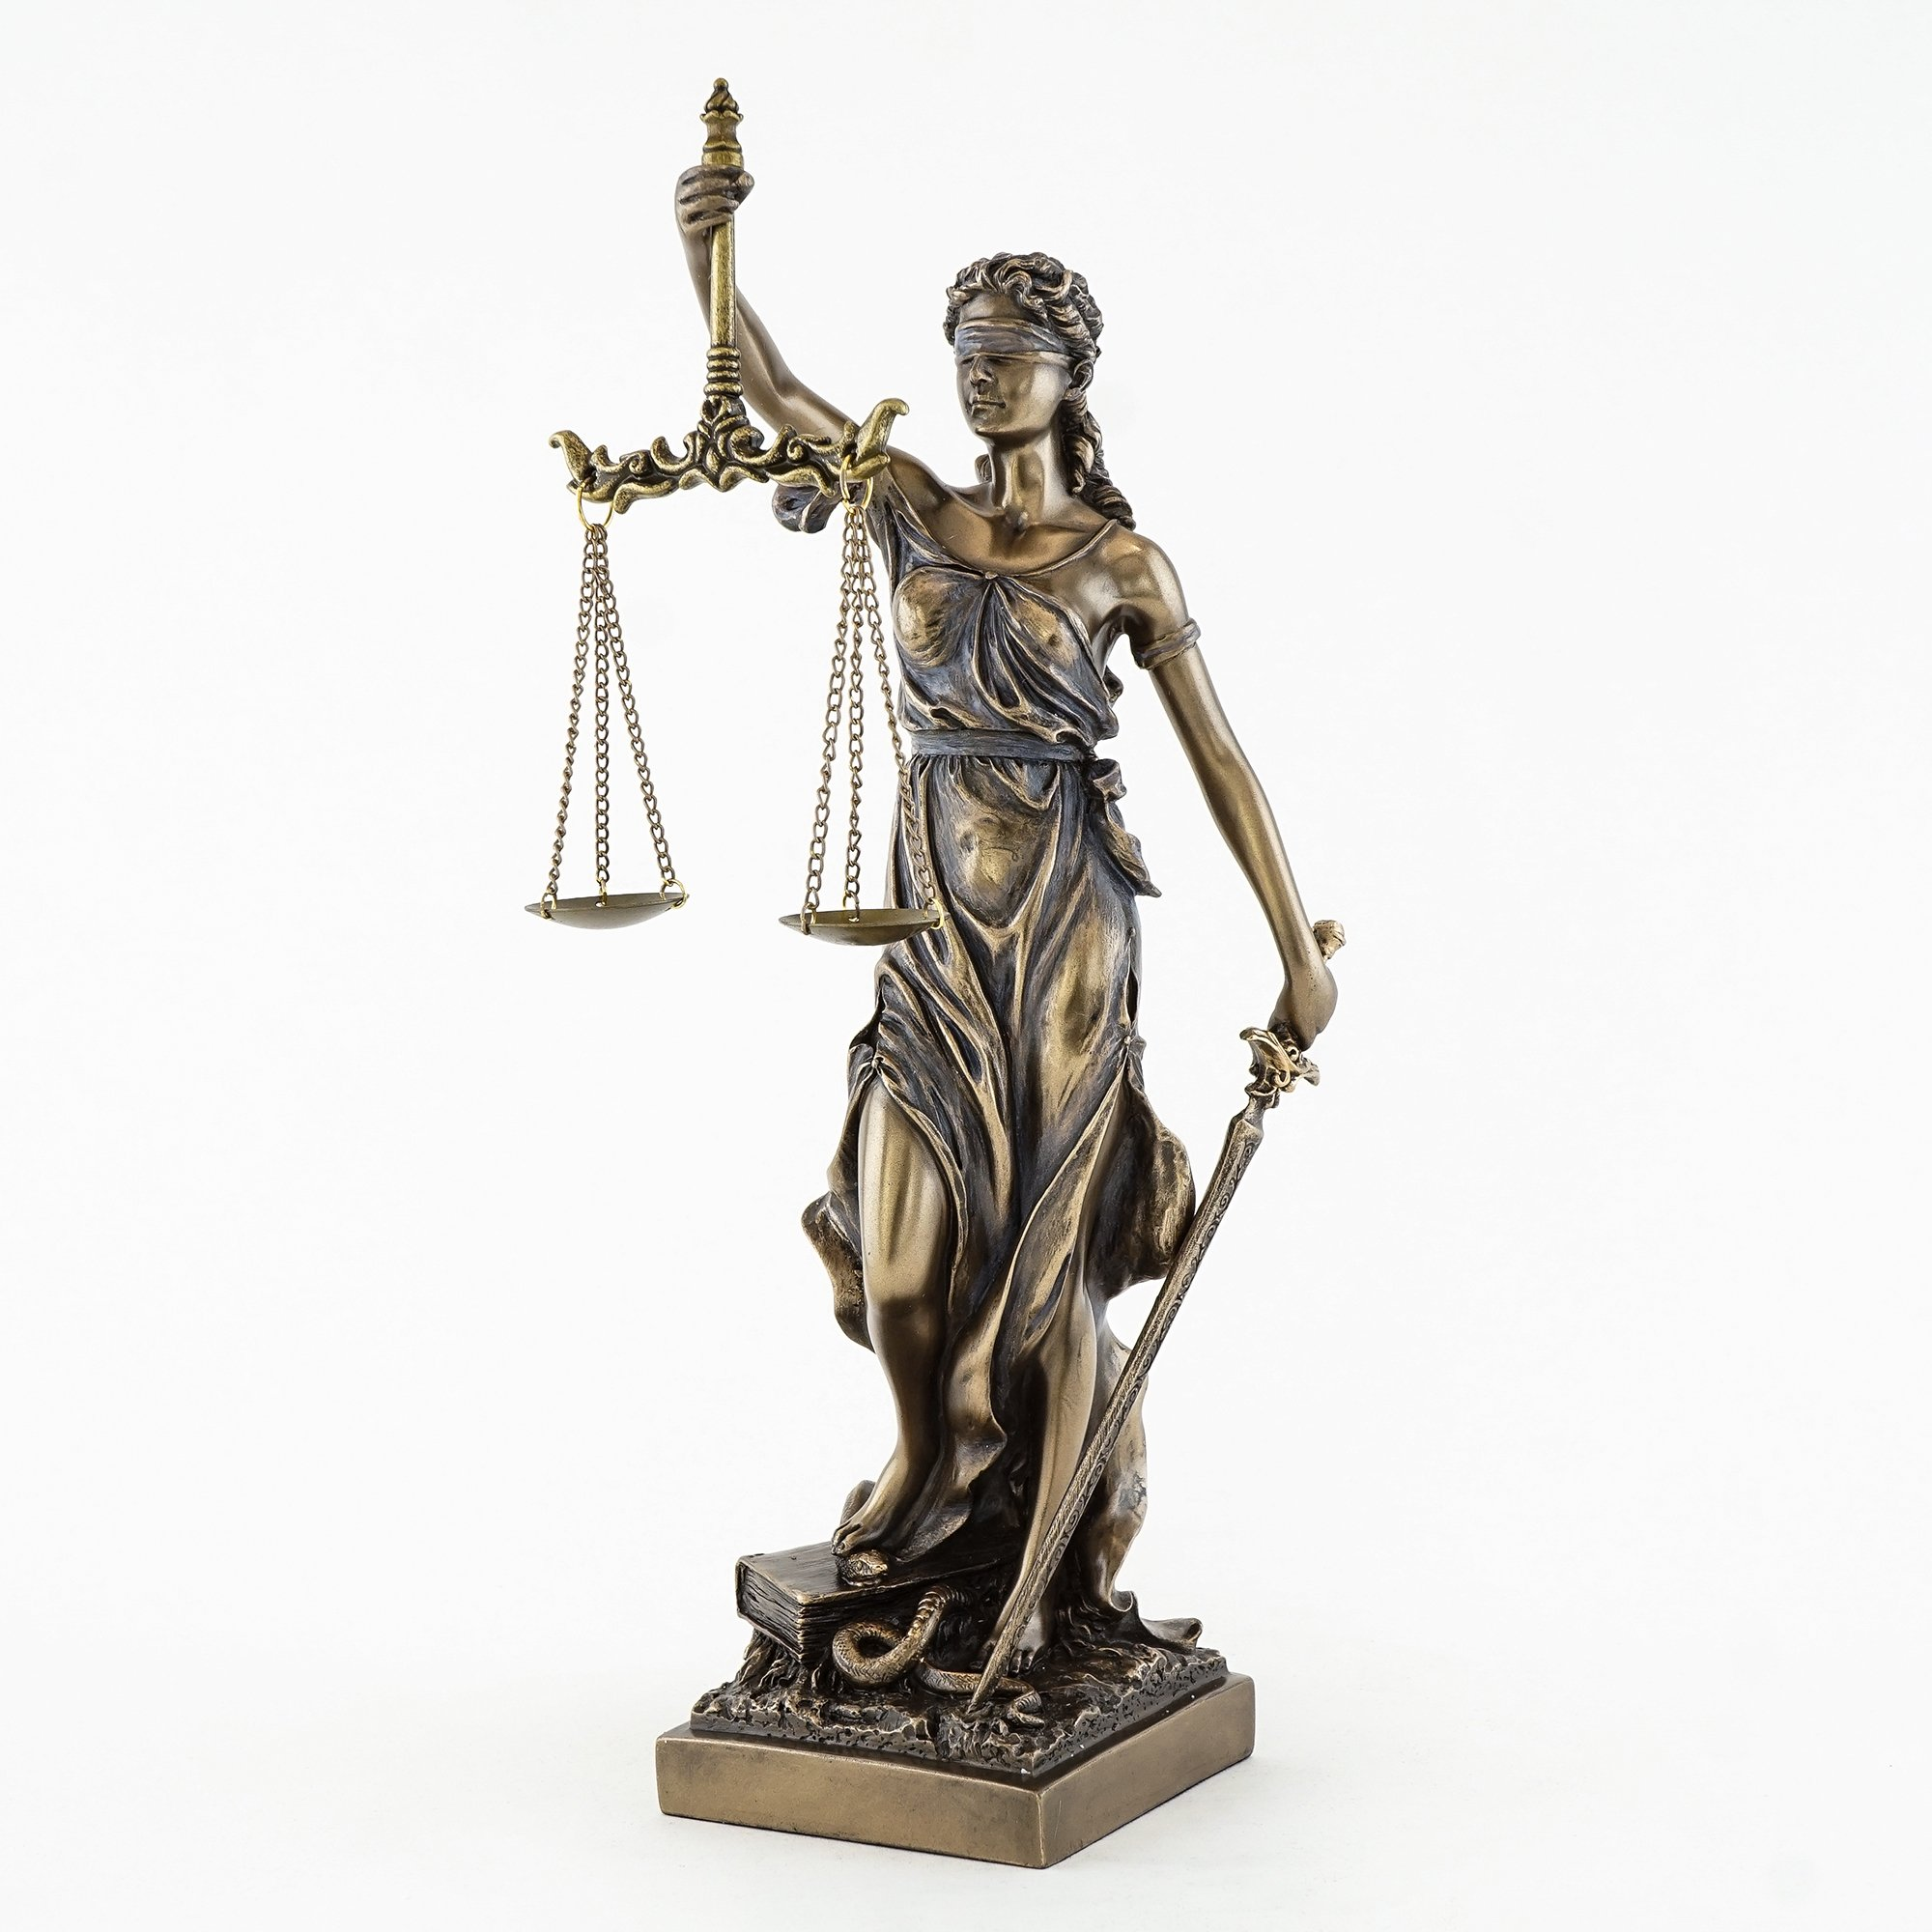 Top Collection 12.5'' Blind Folded Lady Justice Statue in Cold Cast Bronze- Roman Goddess of Justice Sculpture Carrying the Scales of Justice and Sword